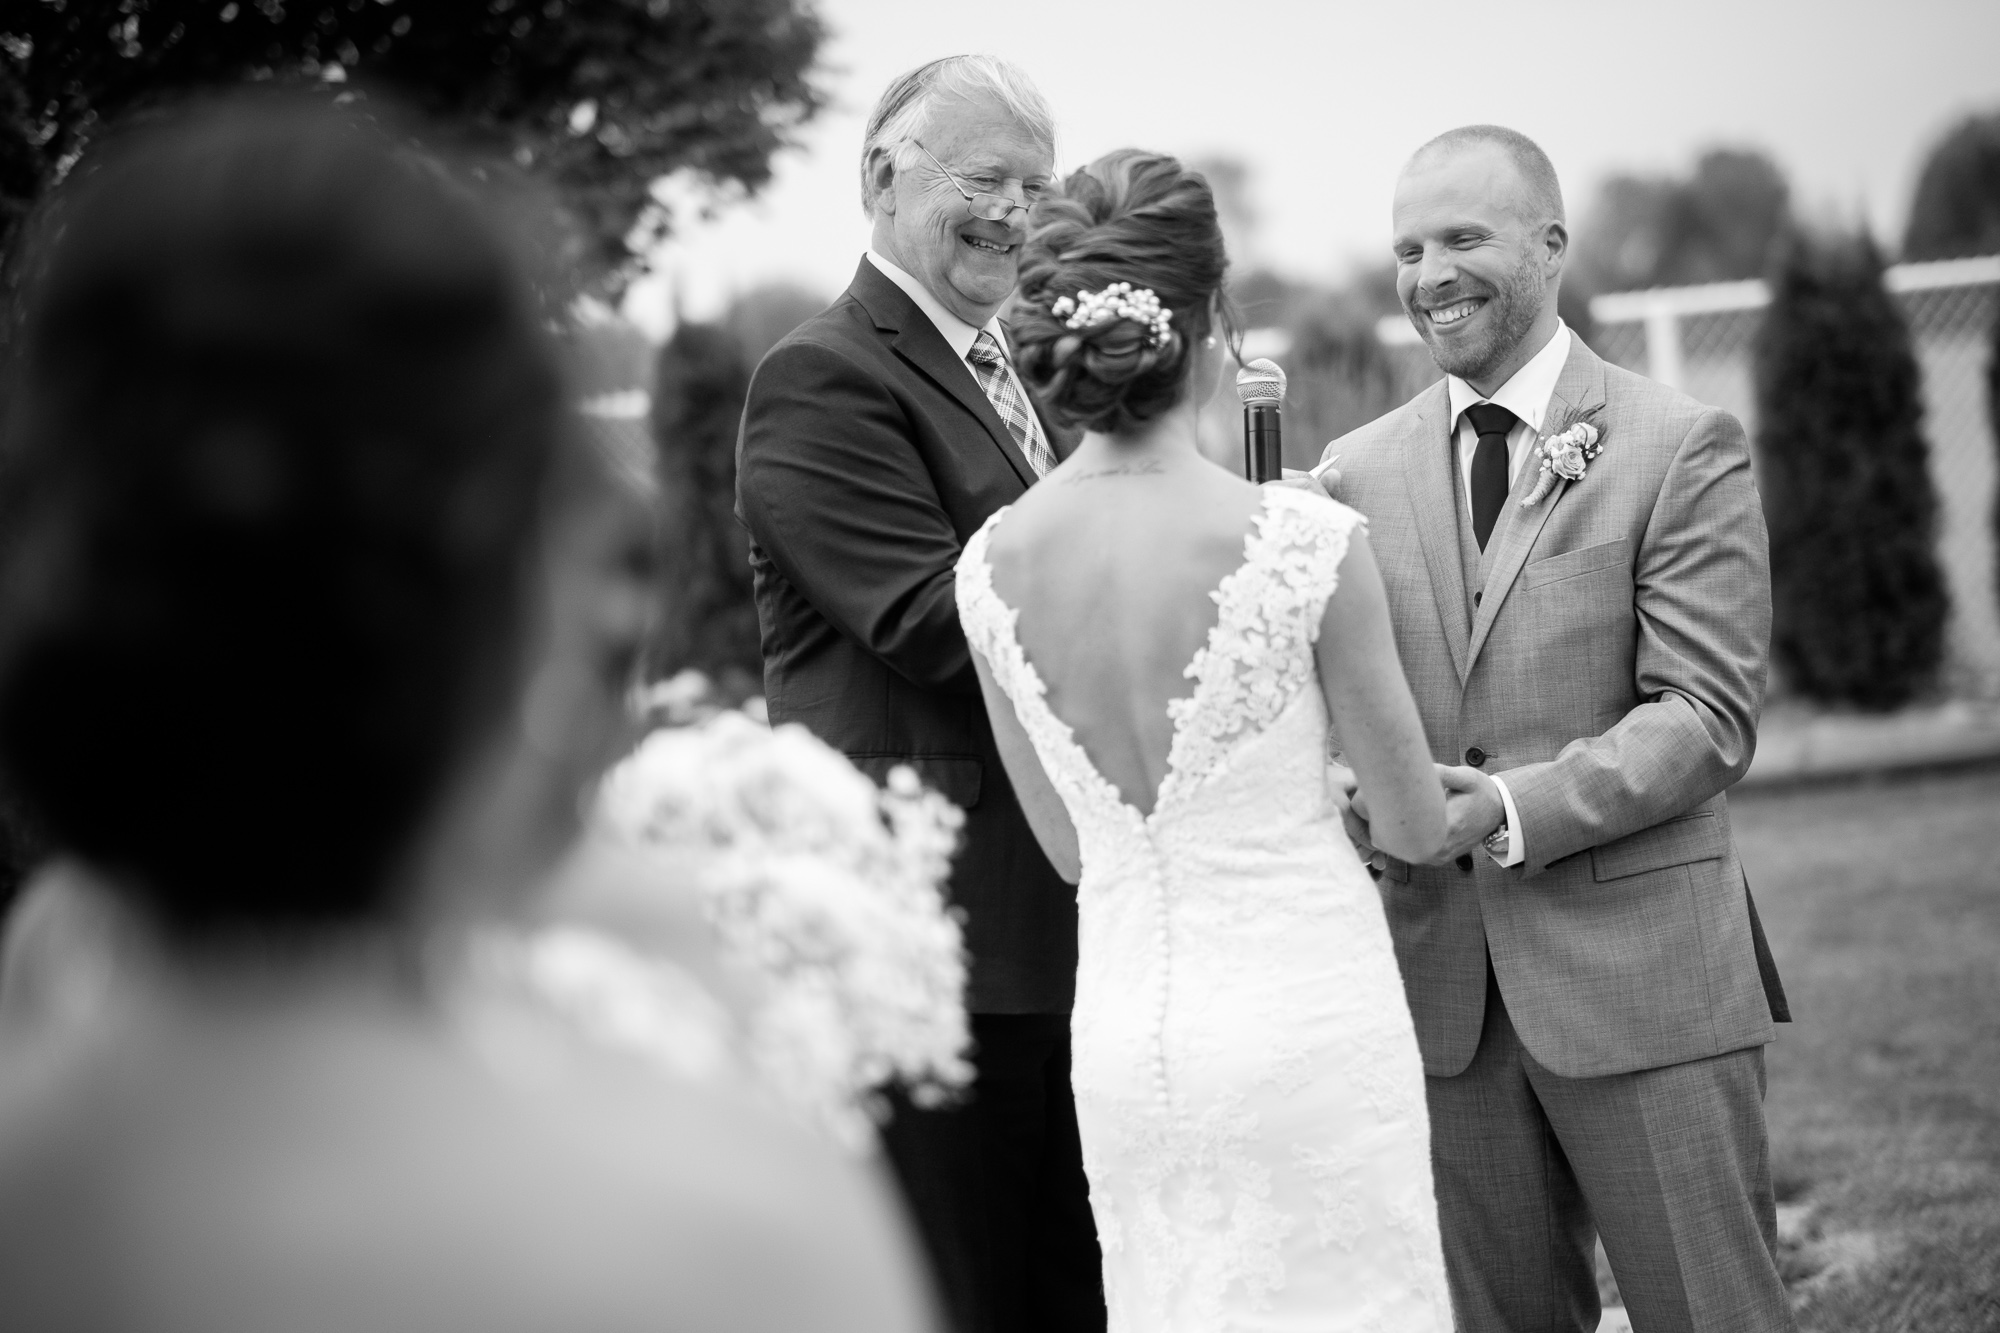 Rebecca + Jeff laugh as they exchange vows during their wedding ceremony at the Hessenland Inn.